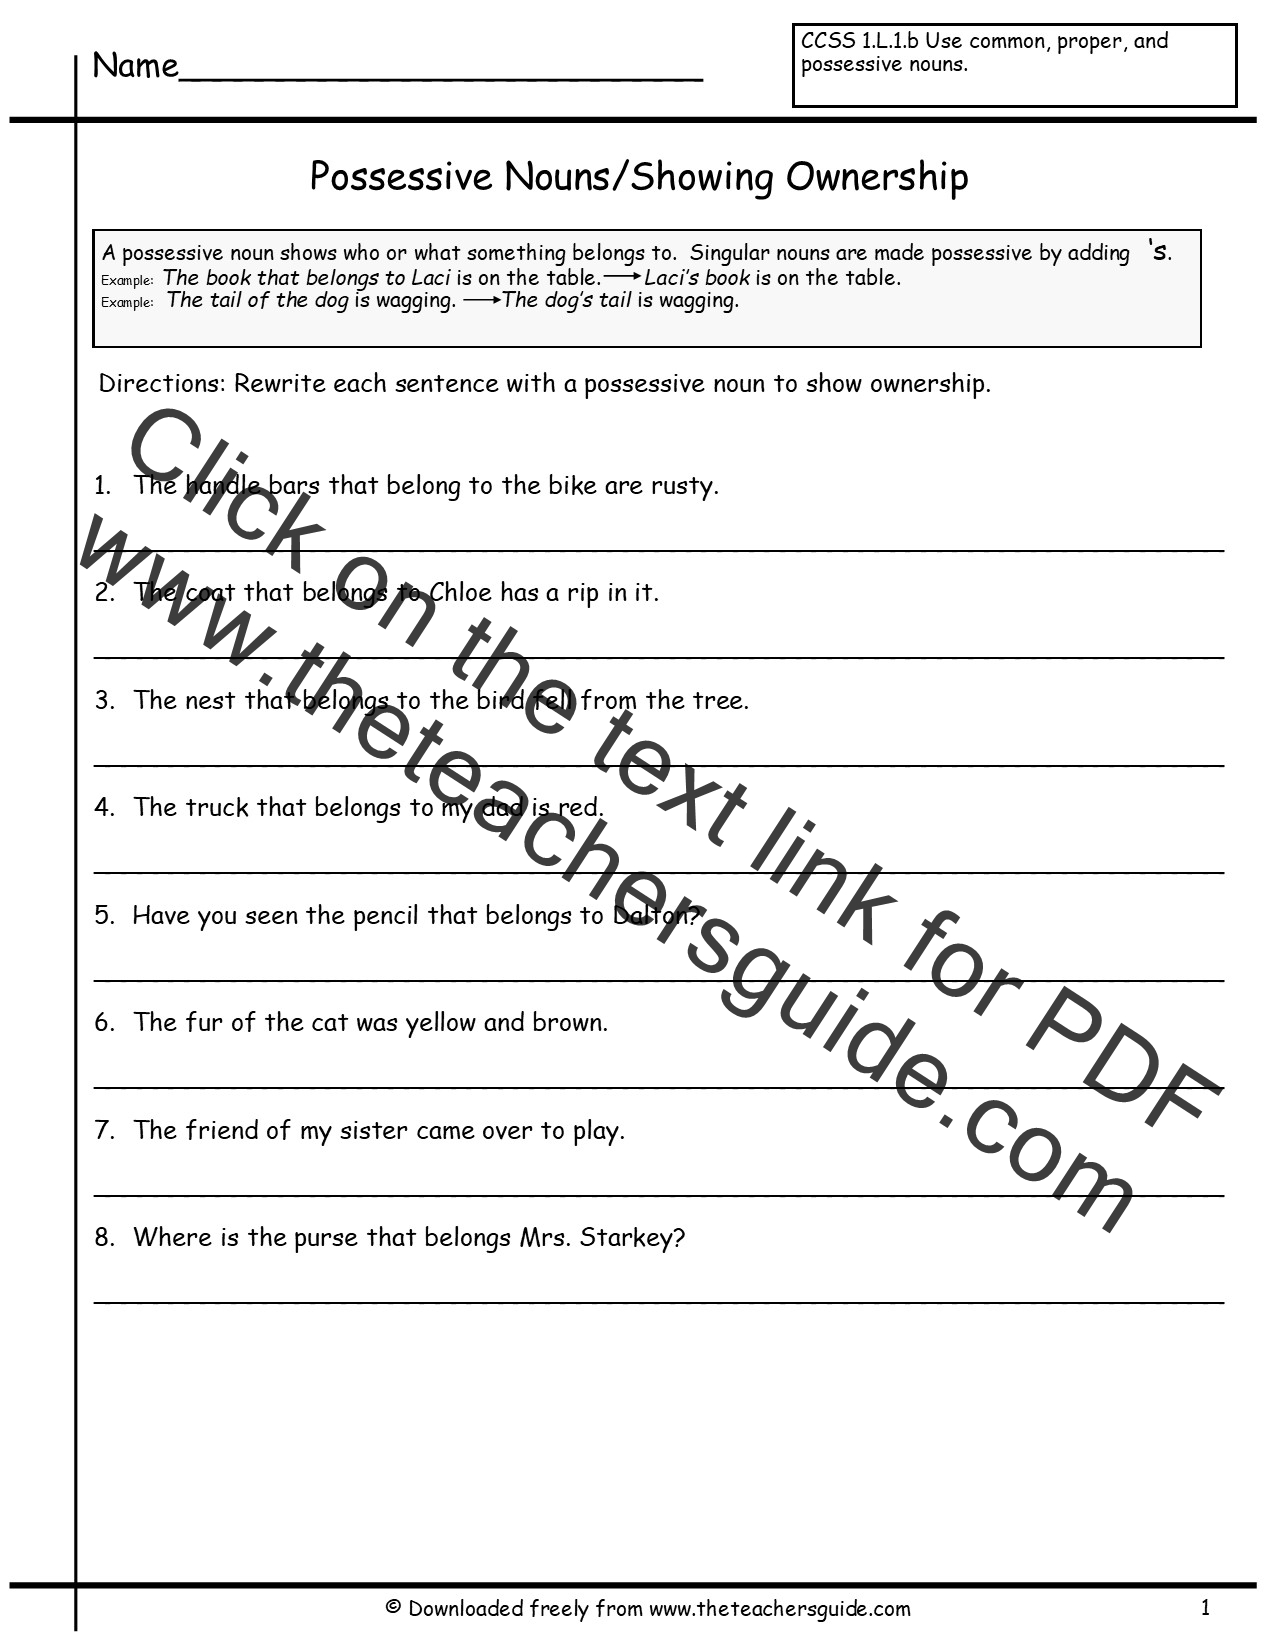 Possessive Nouns Worksheets From The Teacher S Guide